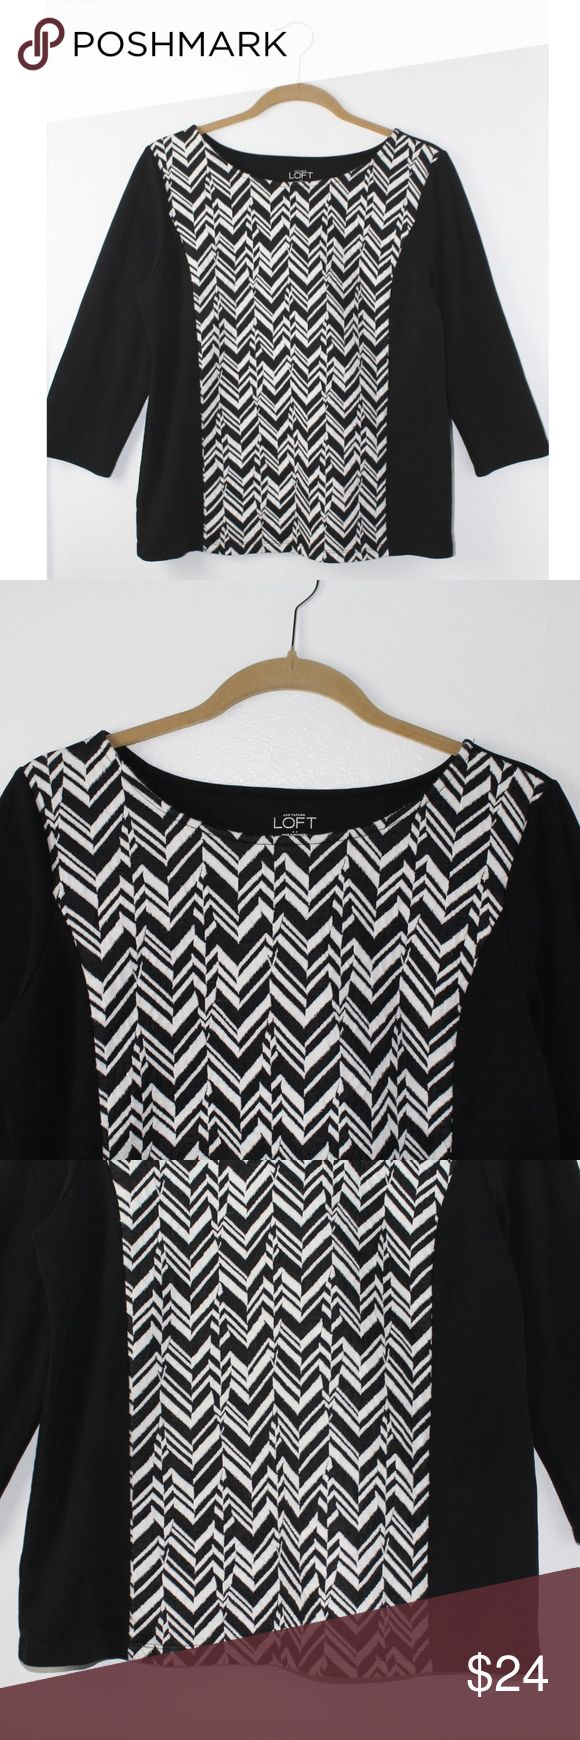 """Ann Taylor LOFT Chevron Blouse Ann Taylor LOFT Chevron Blouse, Size Medium, 3/4 Sleeve, Black & white chevron print, Round neck, Pullover style, Bust approx. 19"""" across pit to pit, Length approx. 23"""", Pre owned great condition! LOFT Tops Blouses"""